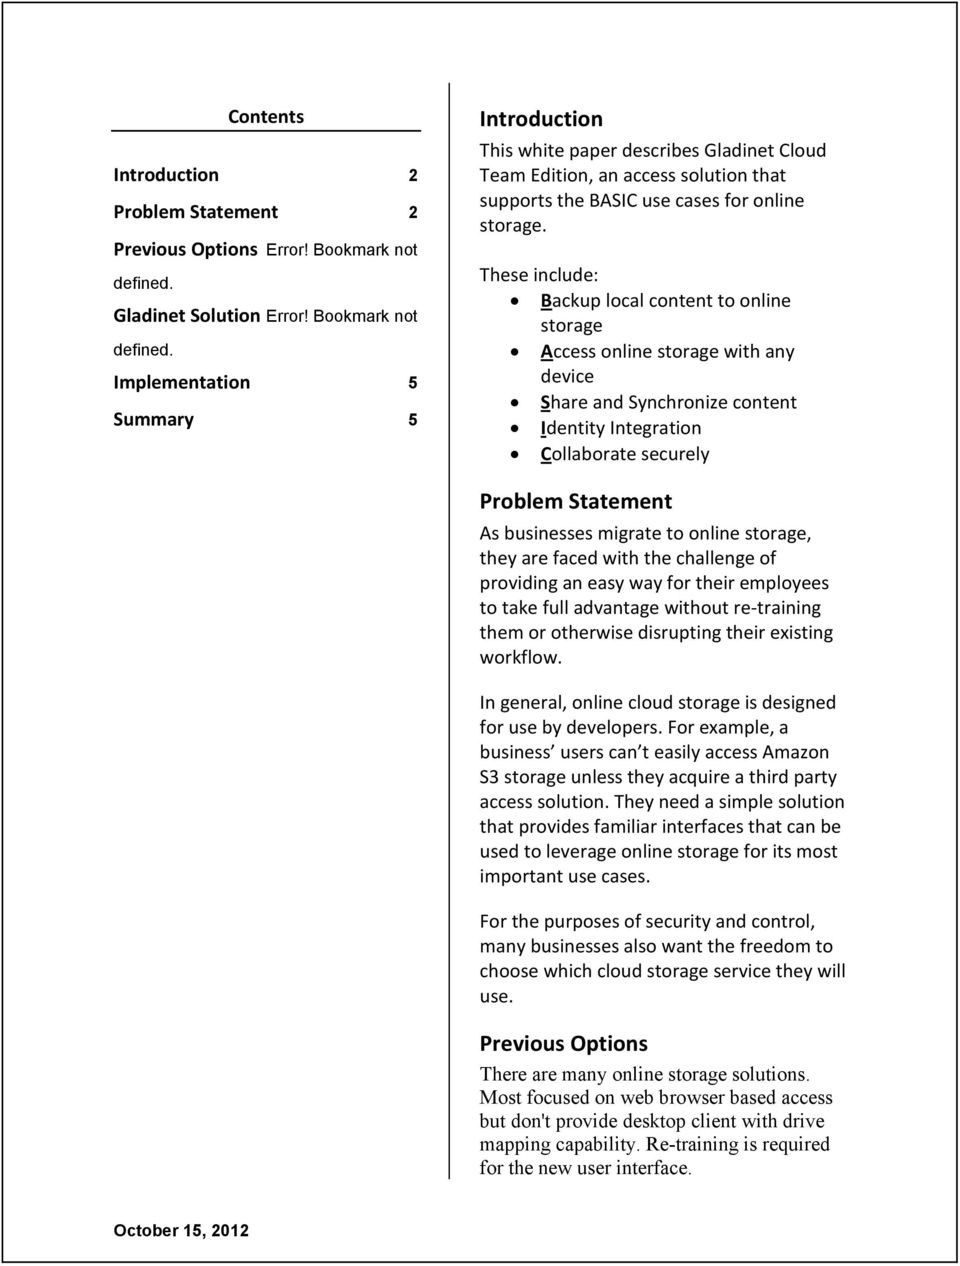 Implementation 5 Summary 5 Introduction This white paper describes Gladinet Cloud Team Edition, an access solution that supports the BASIC use cases for online storage.